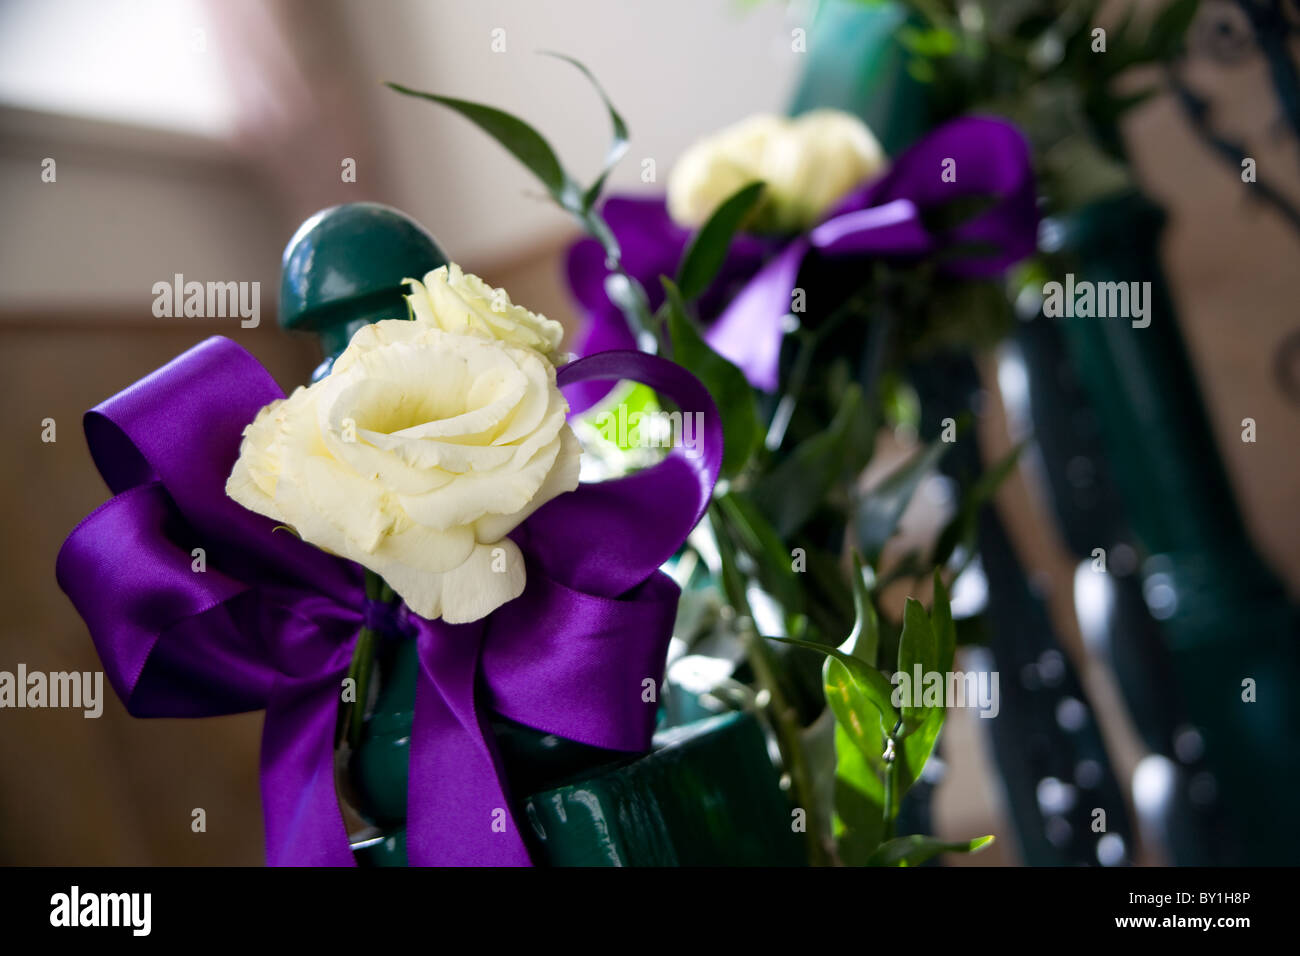 cream roses with purple ribbon on stair banister - Stock Image